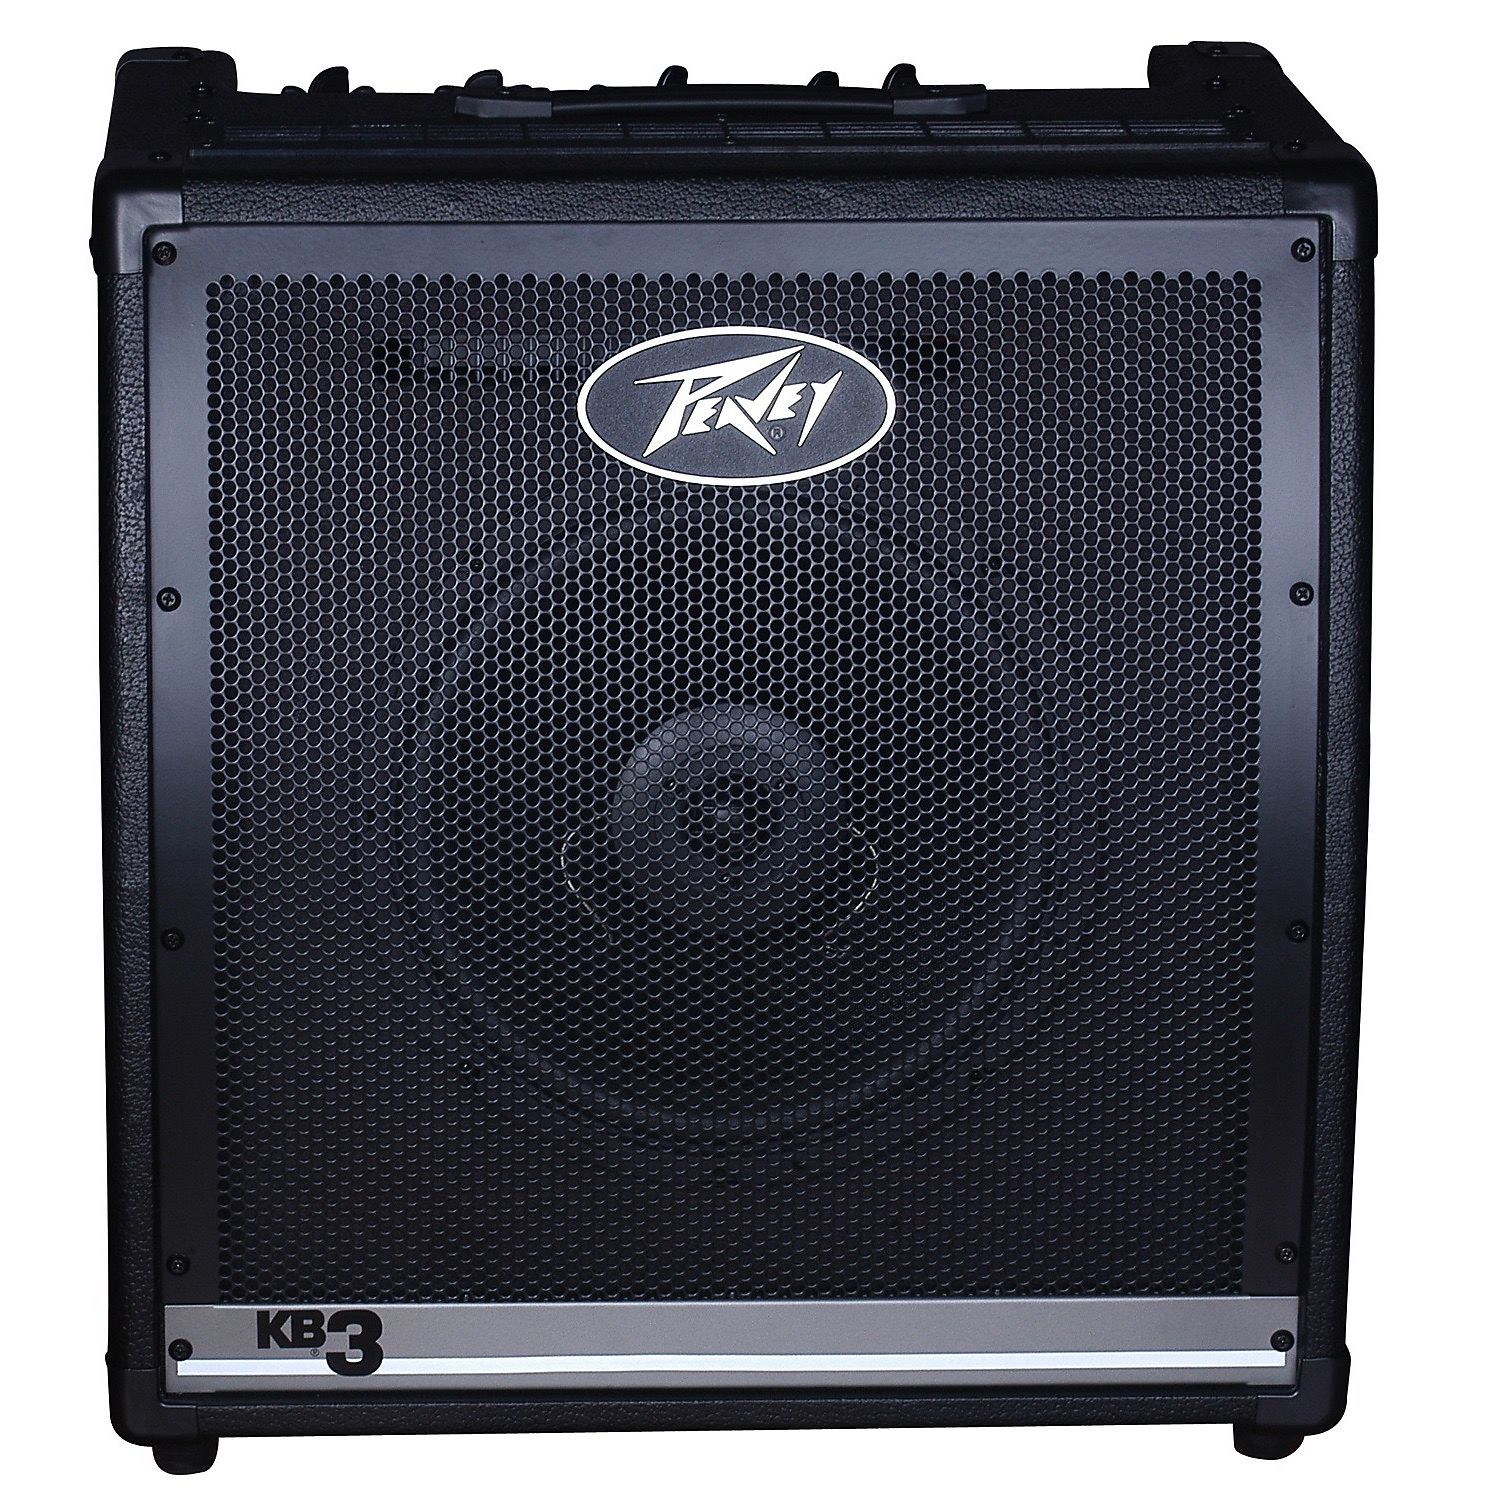 Peavey KB3 2-Channnel Keyboard Amplifier (60 Watts, 1x12 Inch)